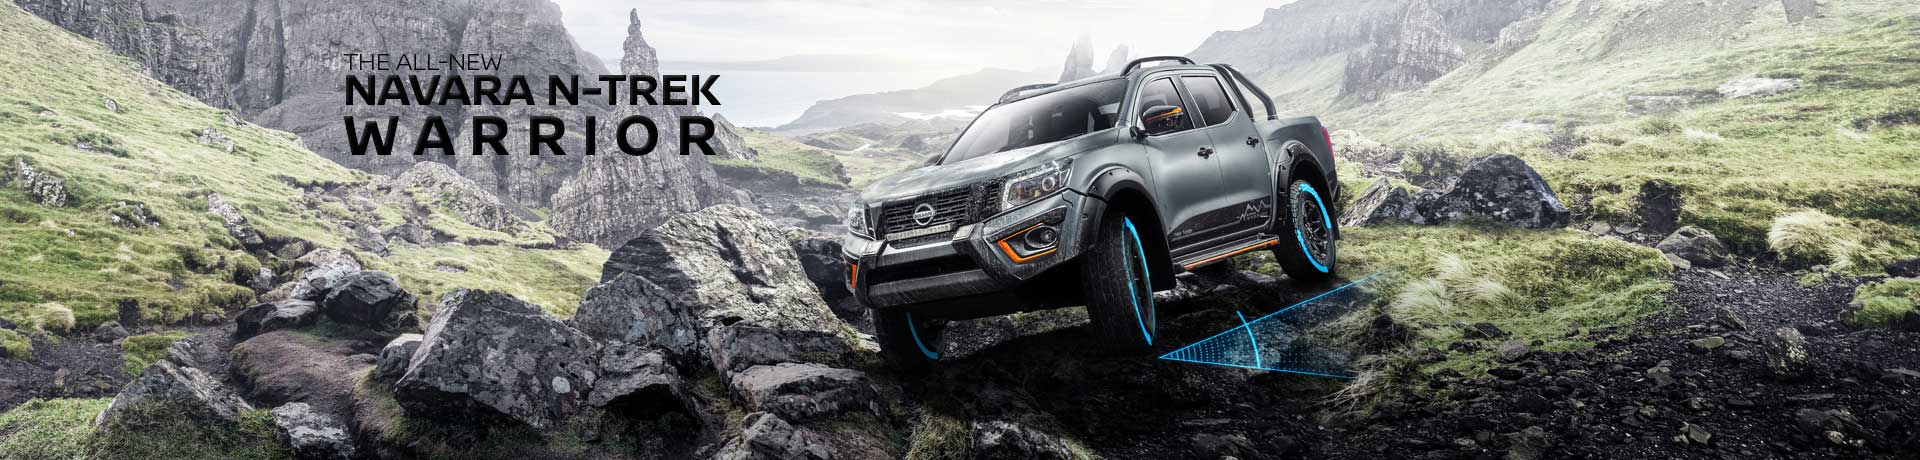 Nissan-Navara-Warrior-Price-Brisbane-lifestyle-photo